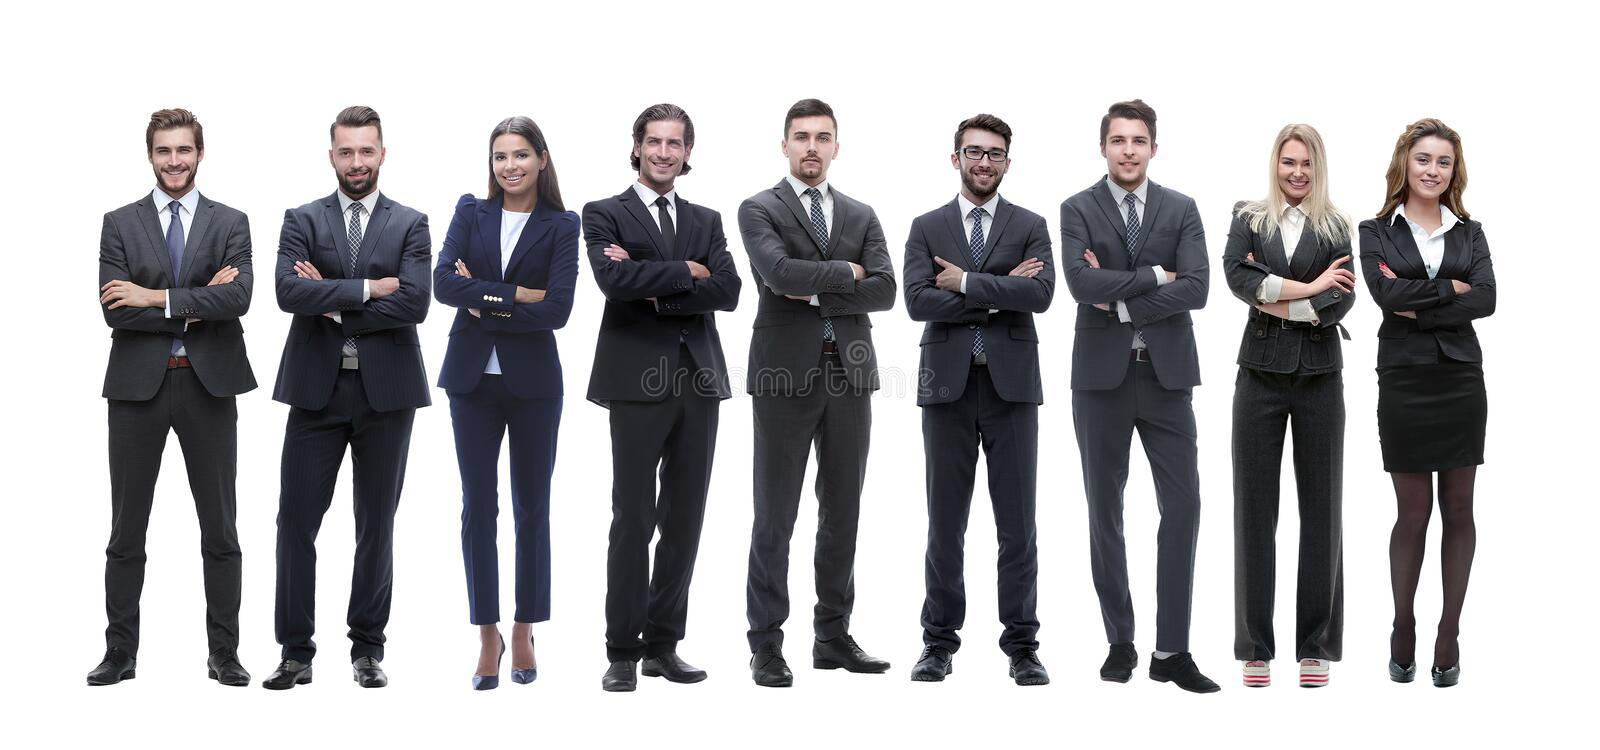 Group of young successful entrepreneurs standing in a row stock photo